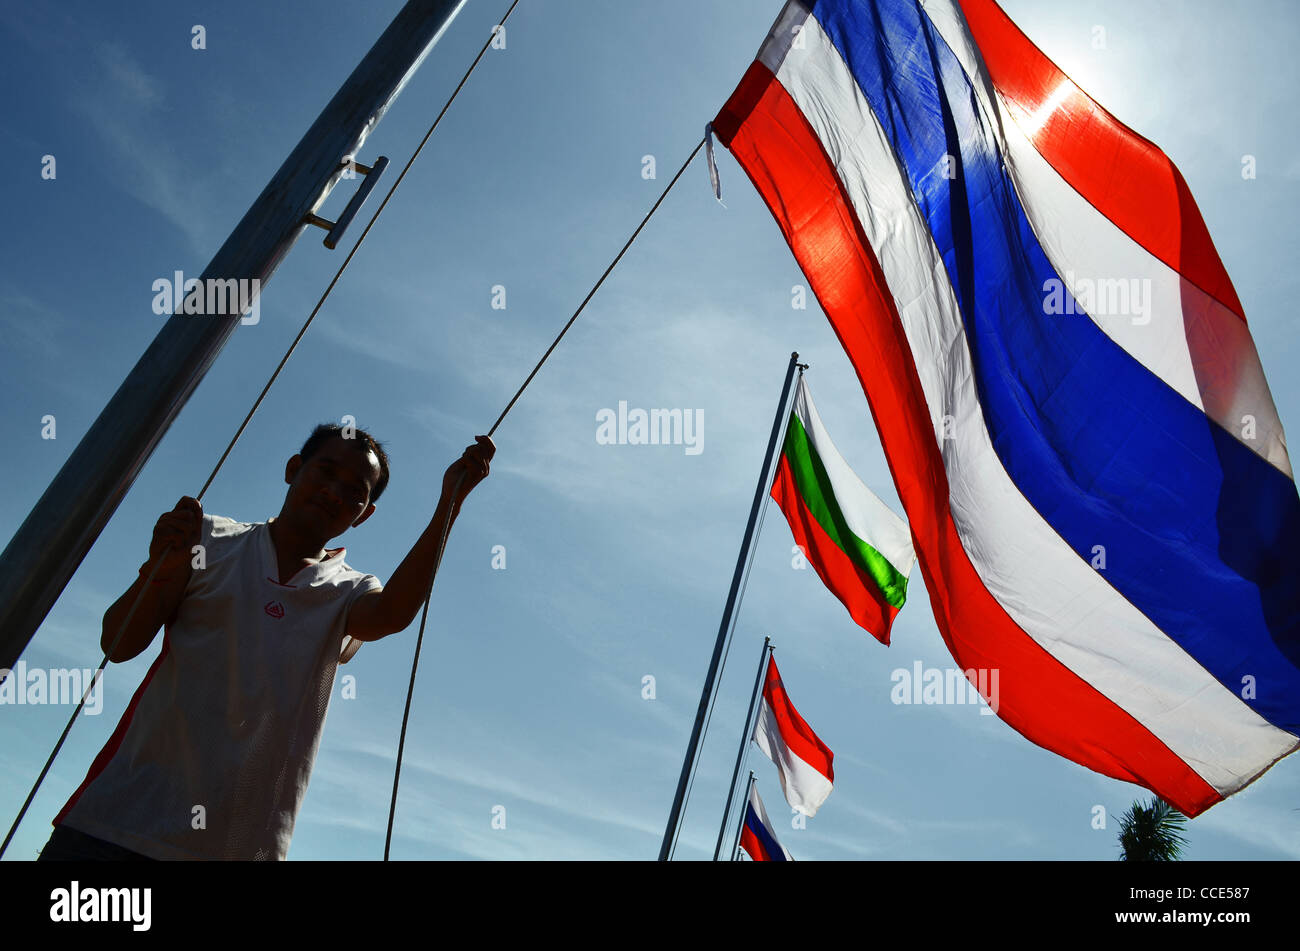 A man raises flags at the riverside in Phnom Penh, Cambodia - Stock Image